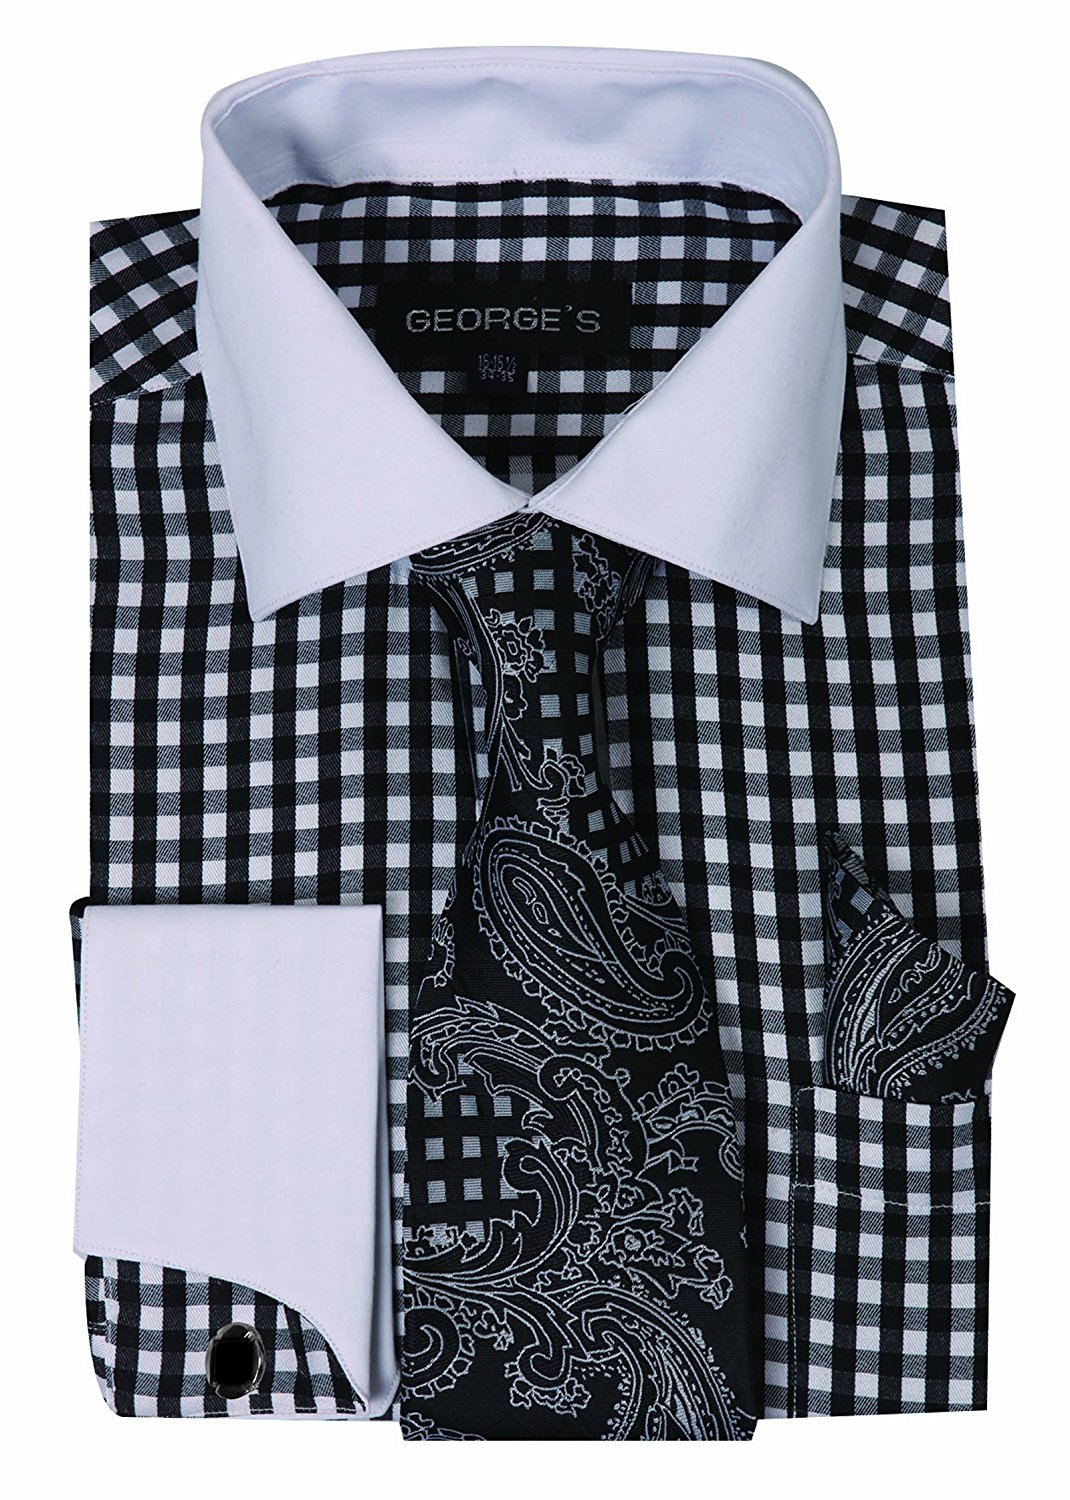 6b9e8104b60d George's Small Check Fashion Shirt With Matching Tie, Hankie and French  Cuffs AH615